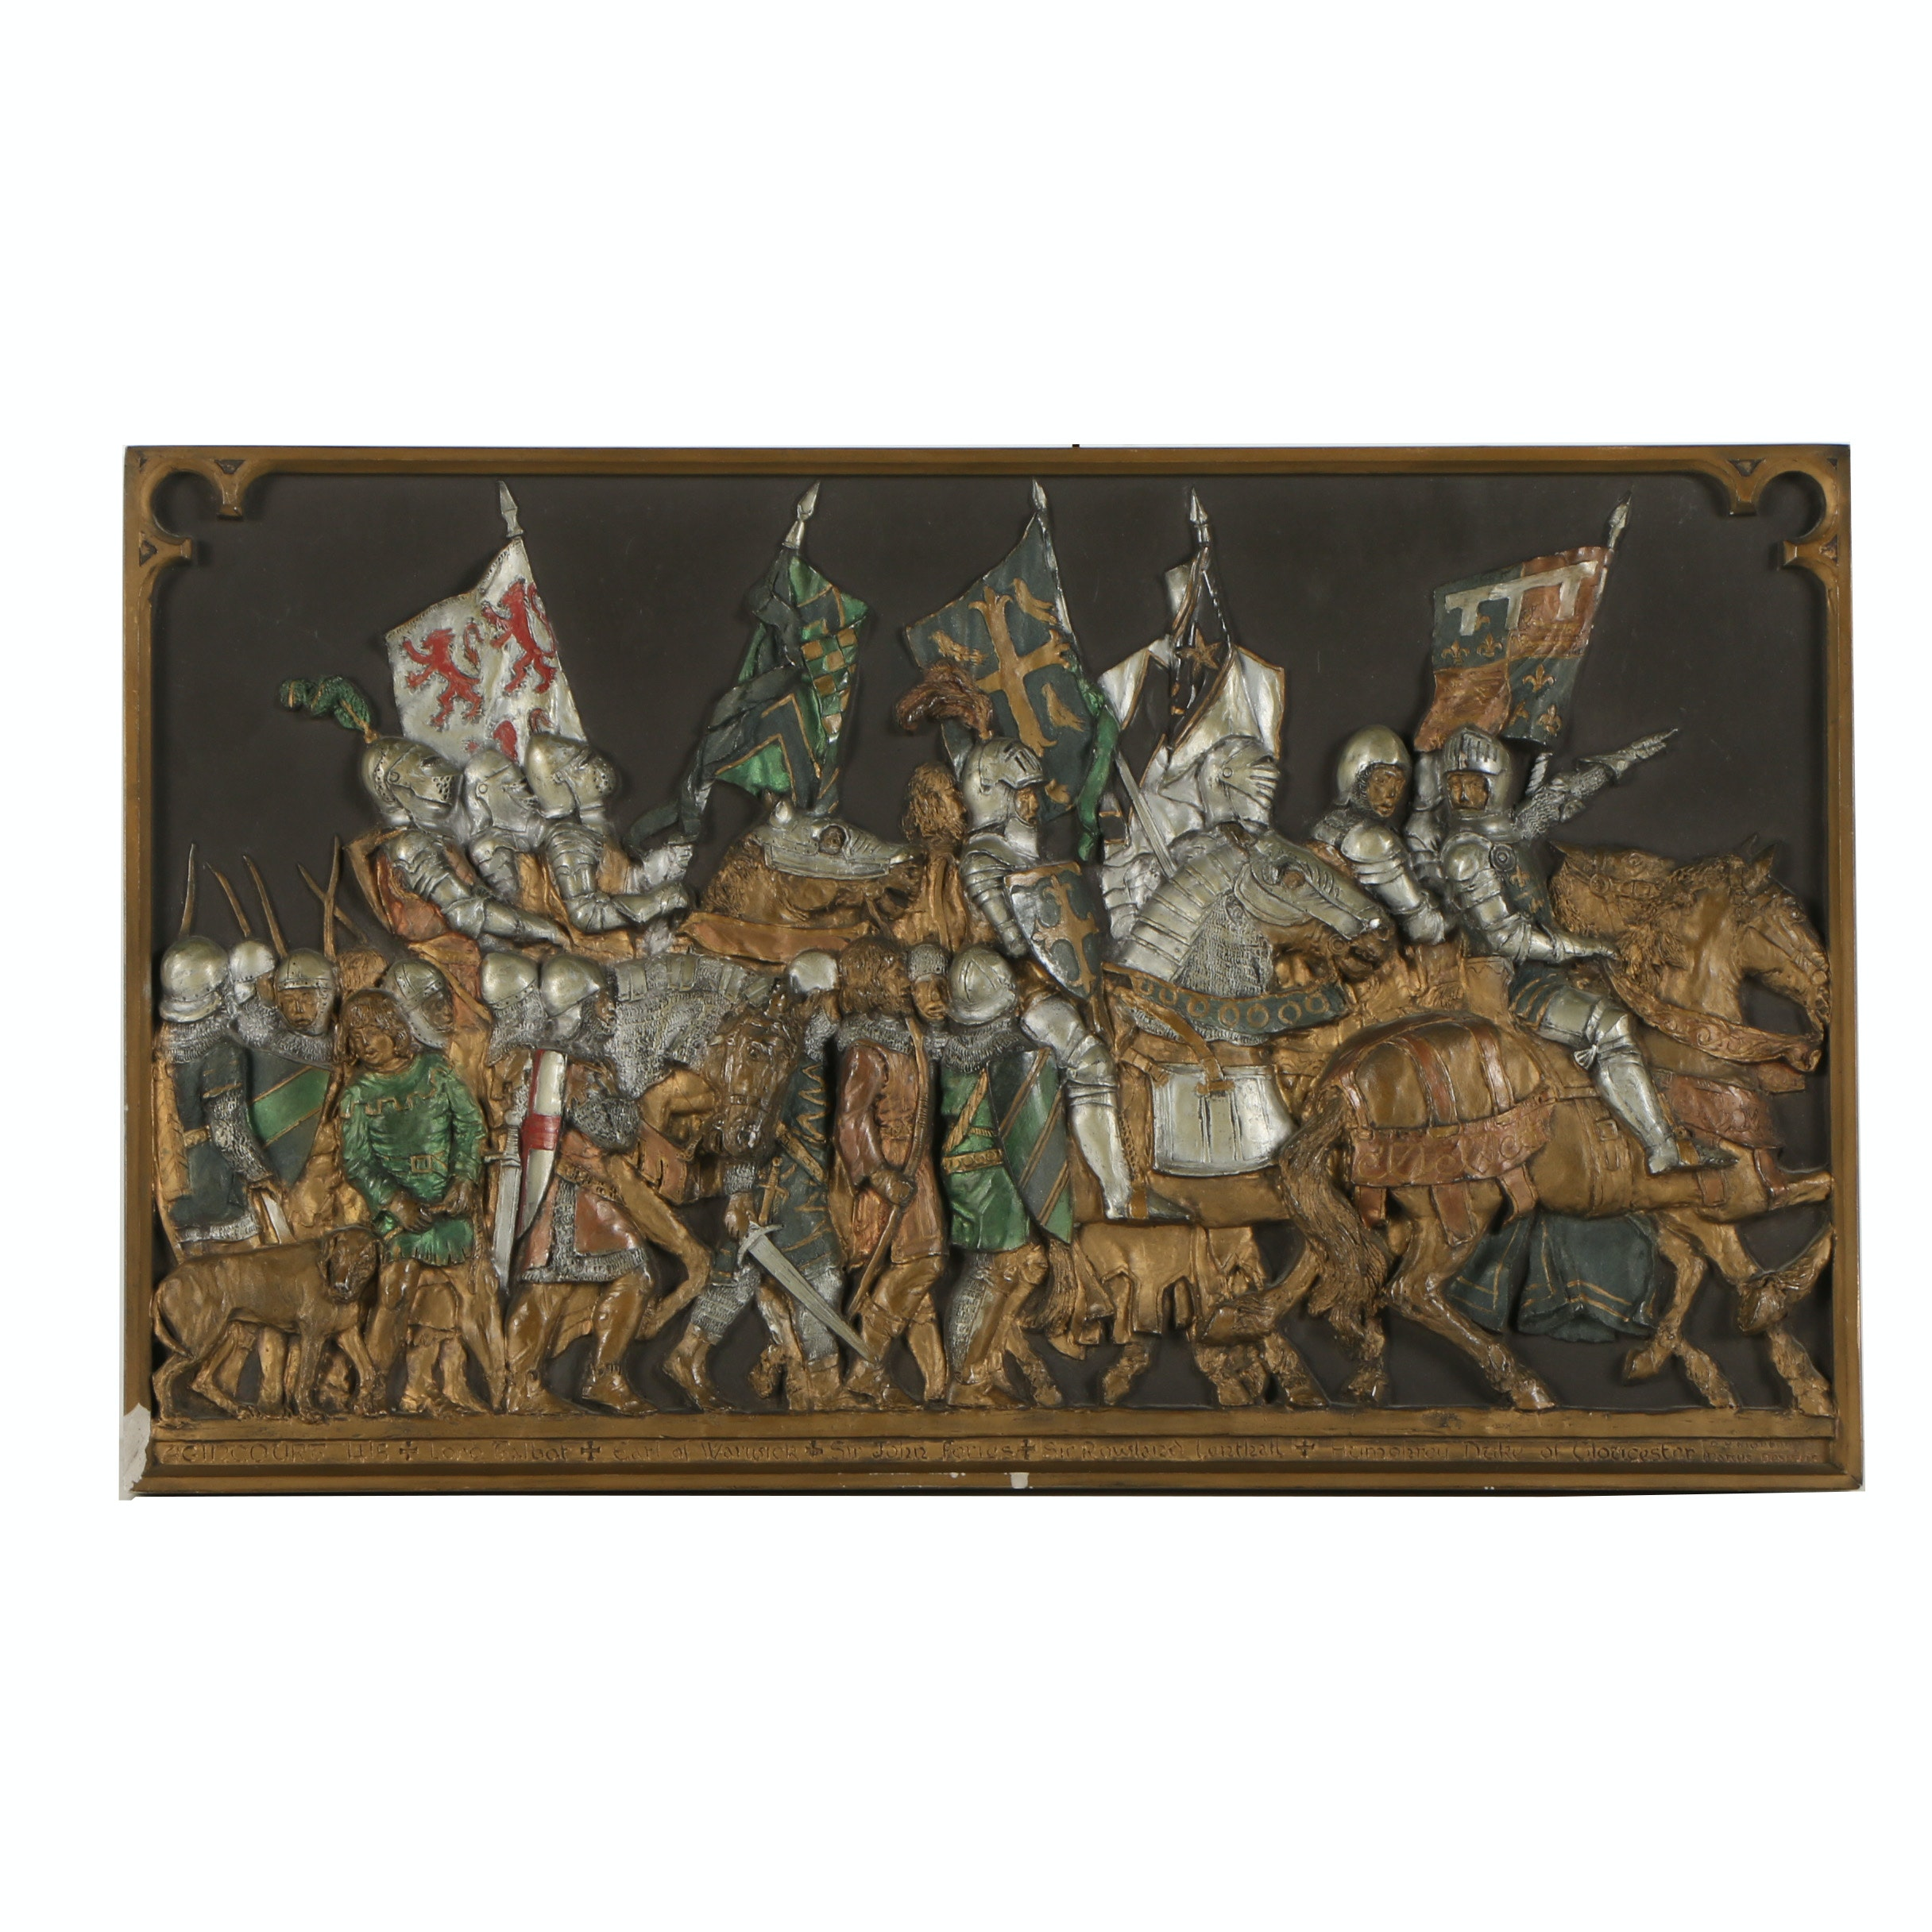 Hand Painted Cast Metal Sculpture of the Battle of Agincourt